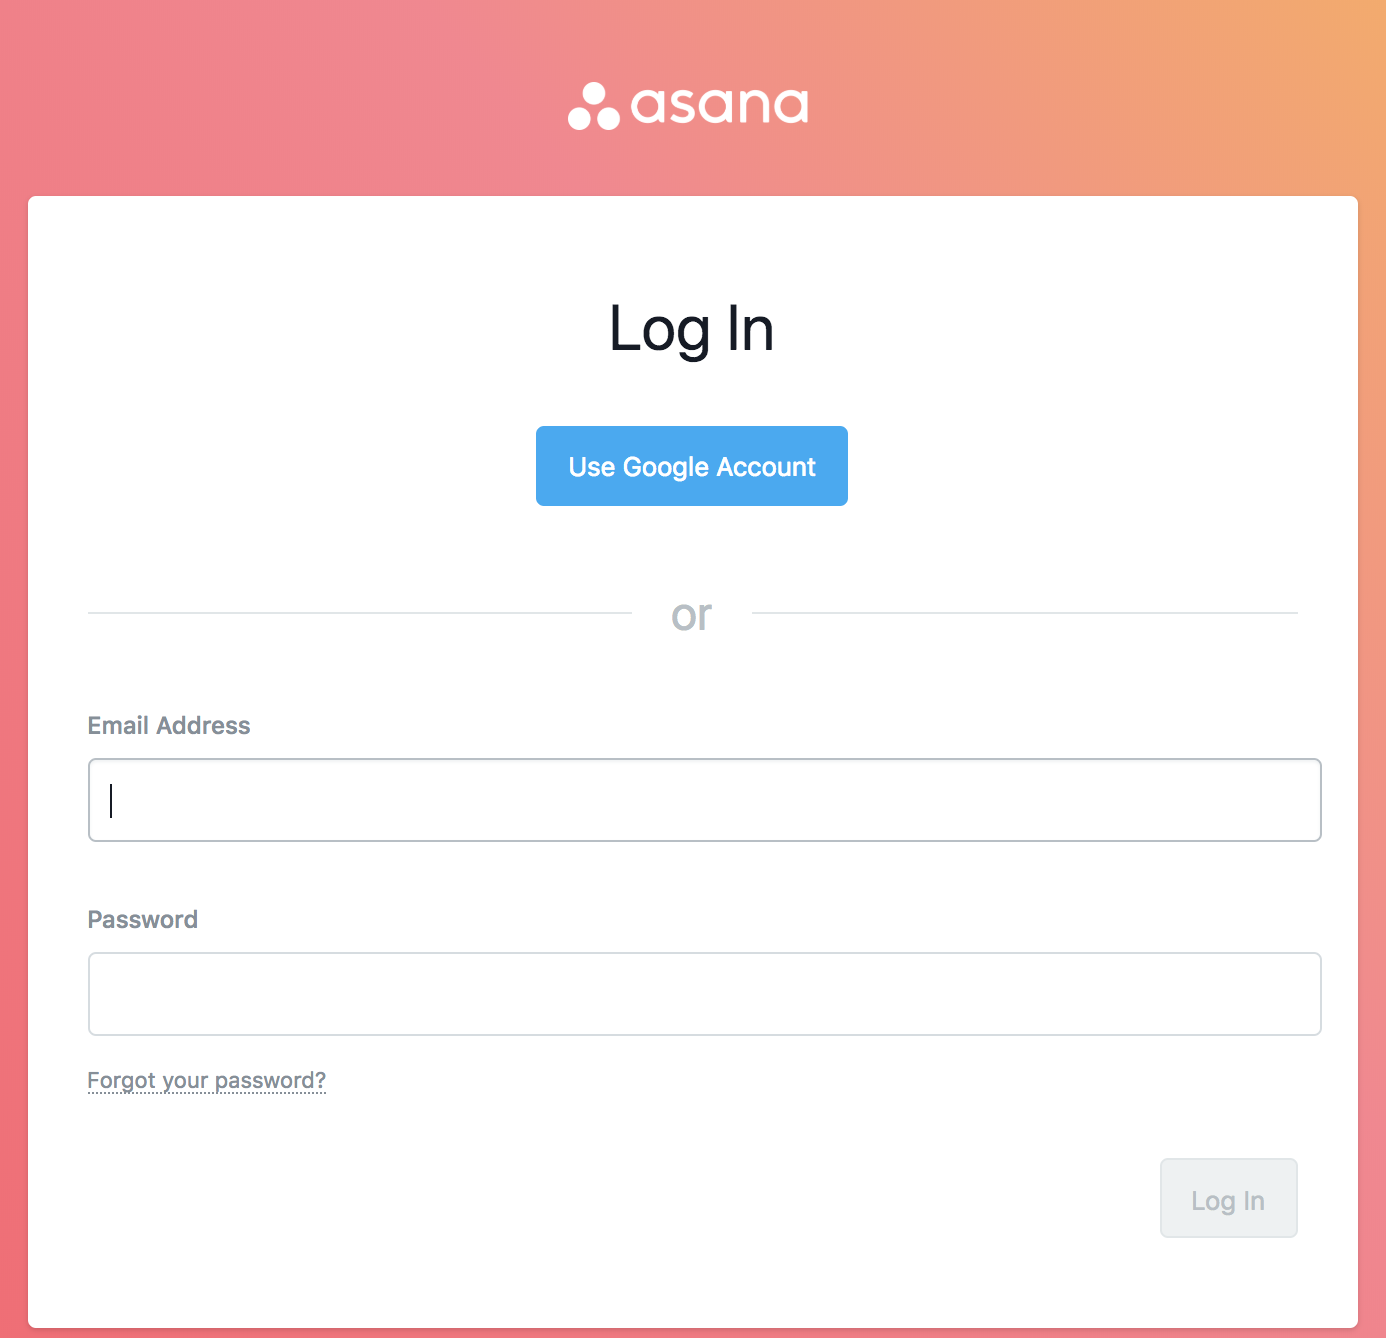 How to enable and use the Asana integration - API